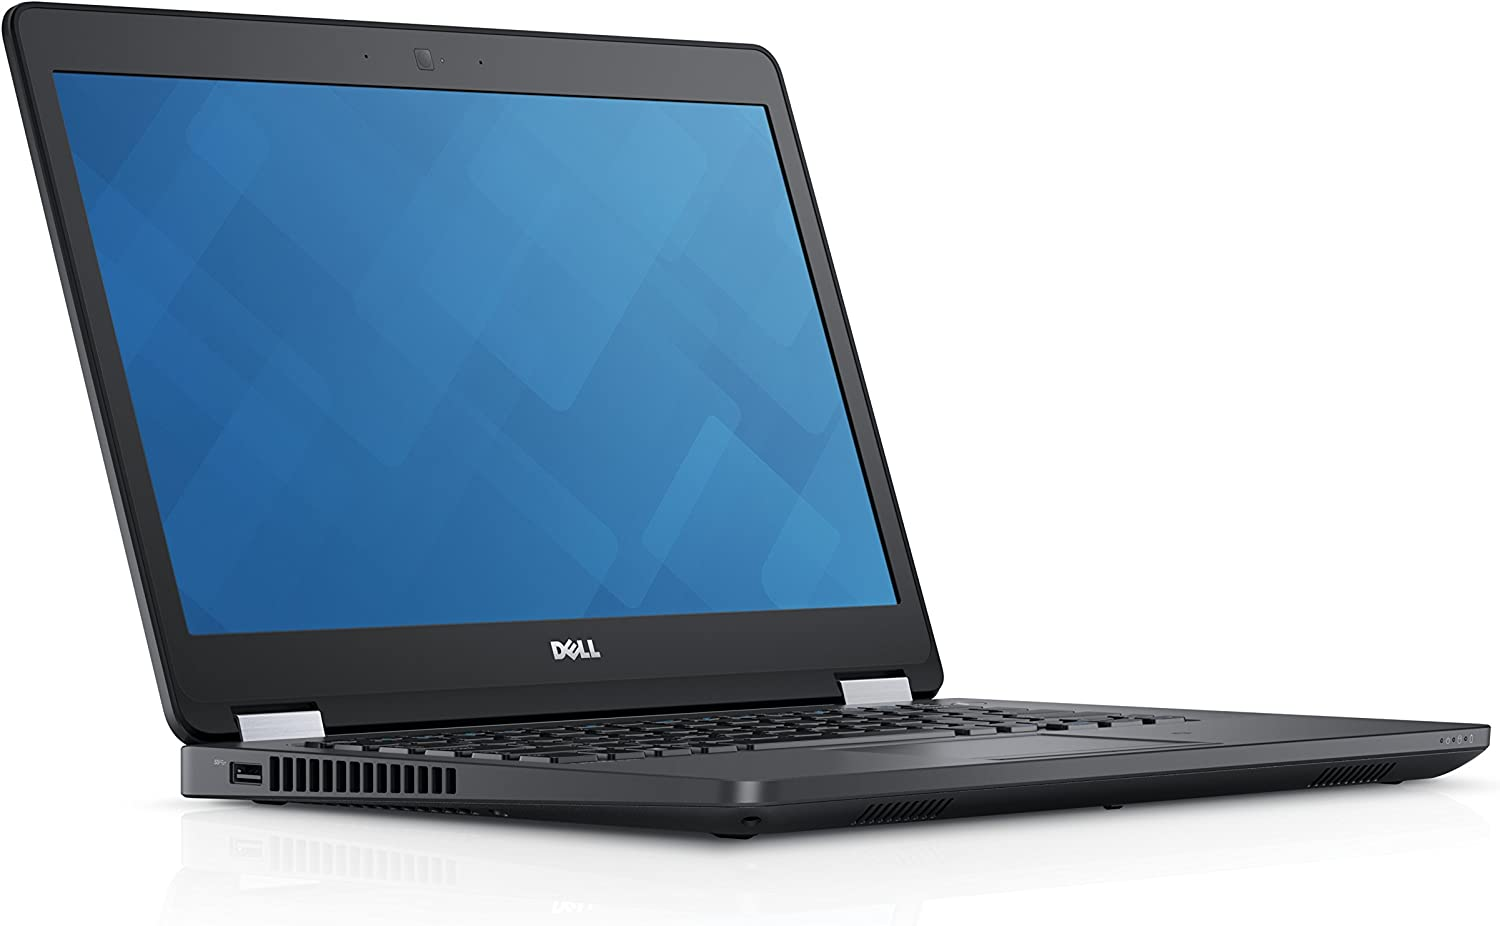 "Dell Latitude LAT5470-4383BLK 14"" FHD Notebook (Intel Core i5-6300U, 8GB RAM, 500GB HDD, Windows 7 Pro)"